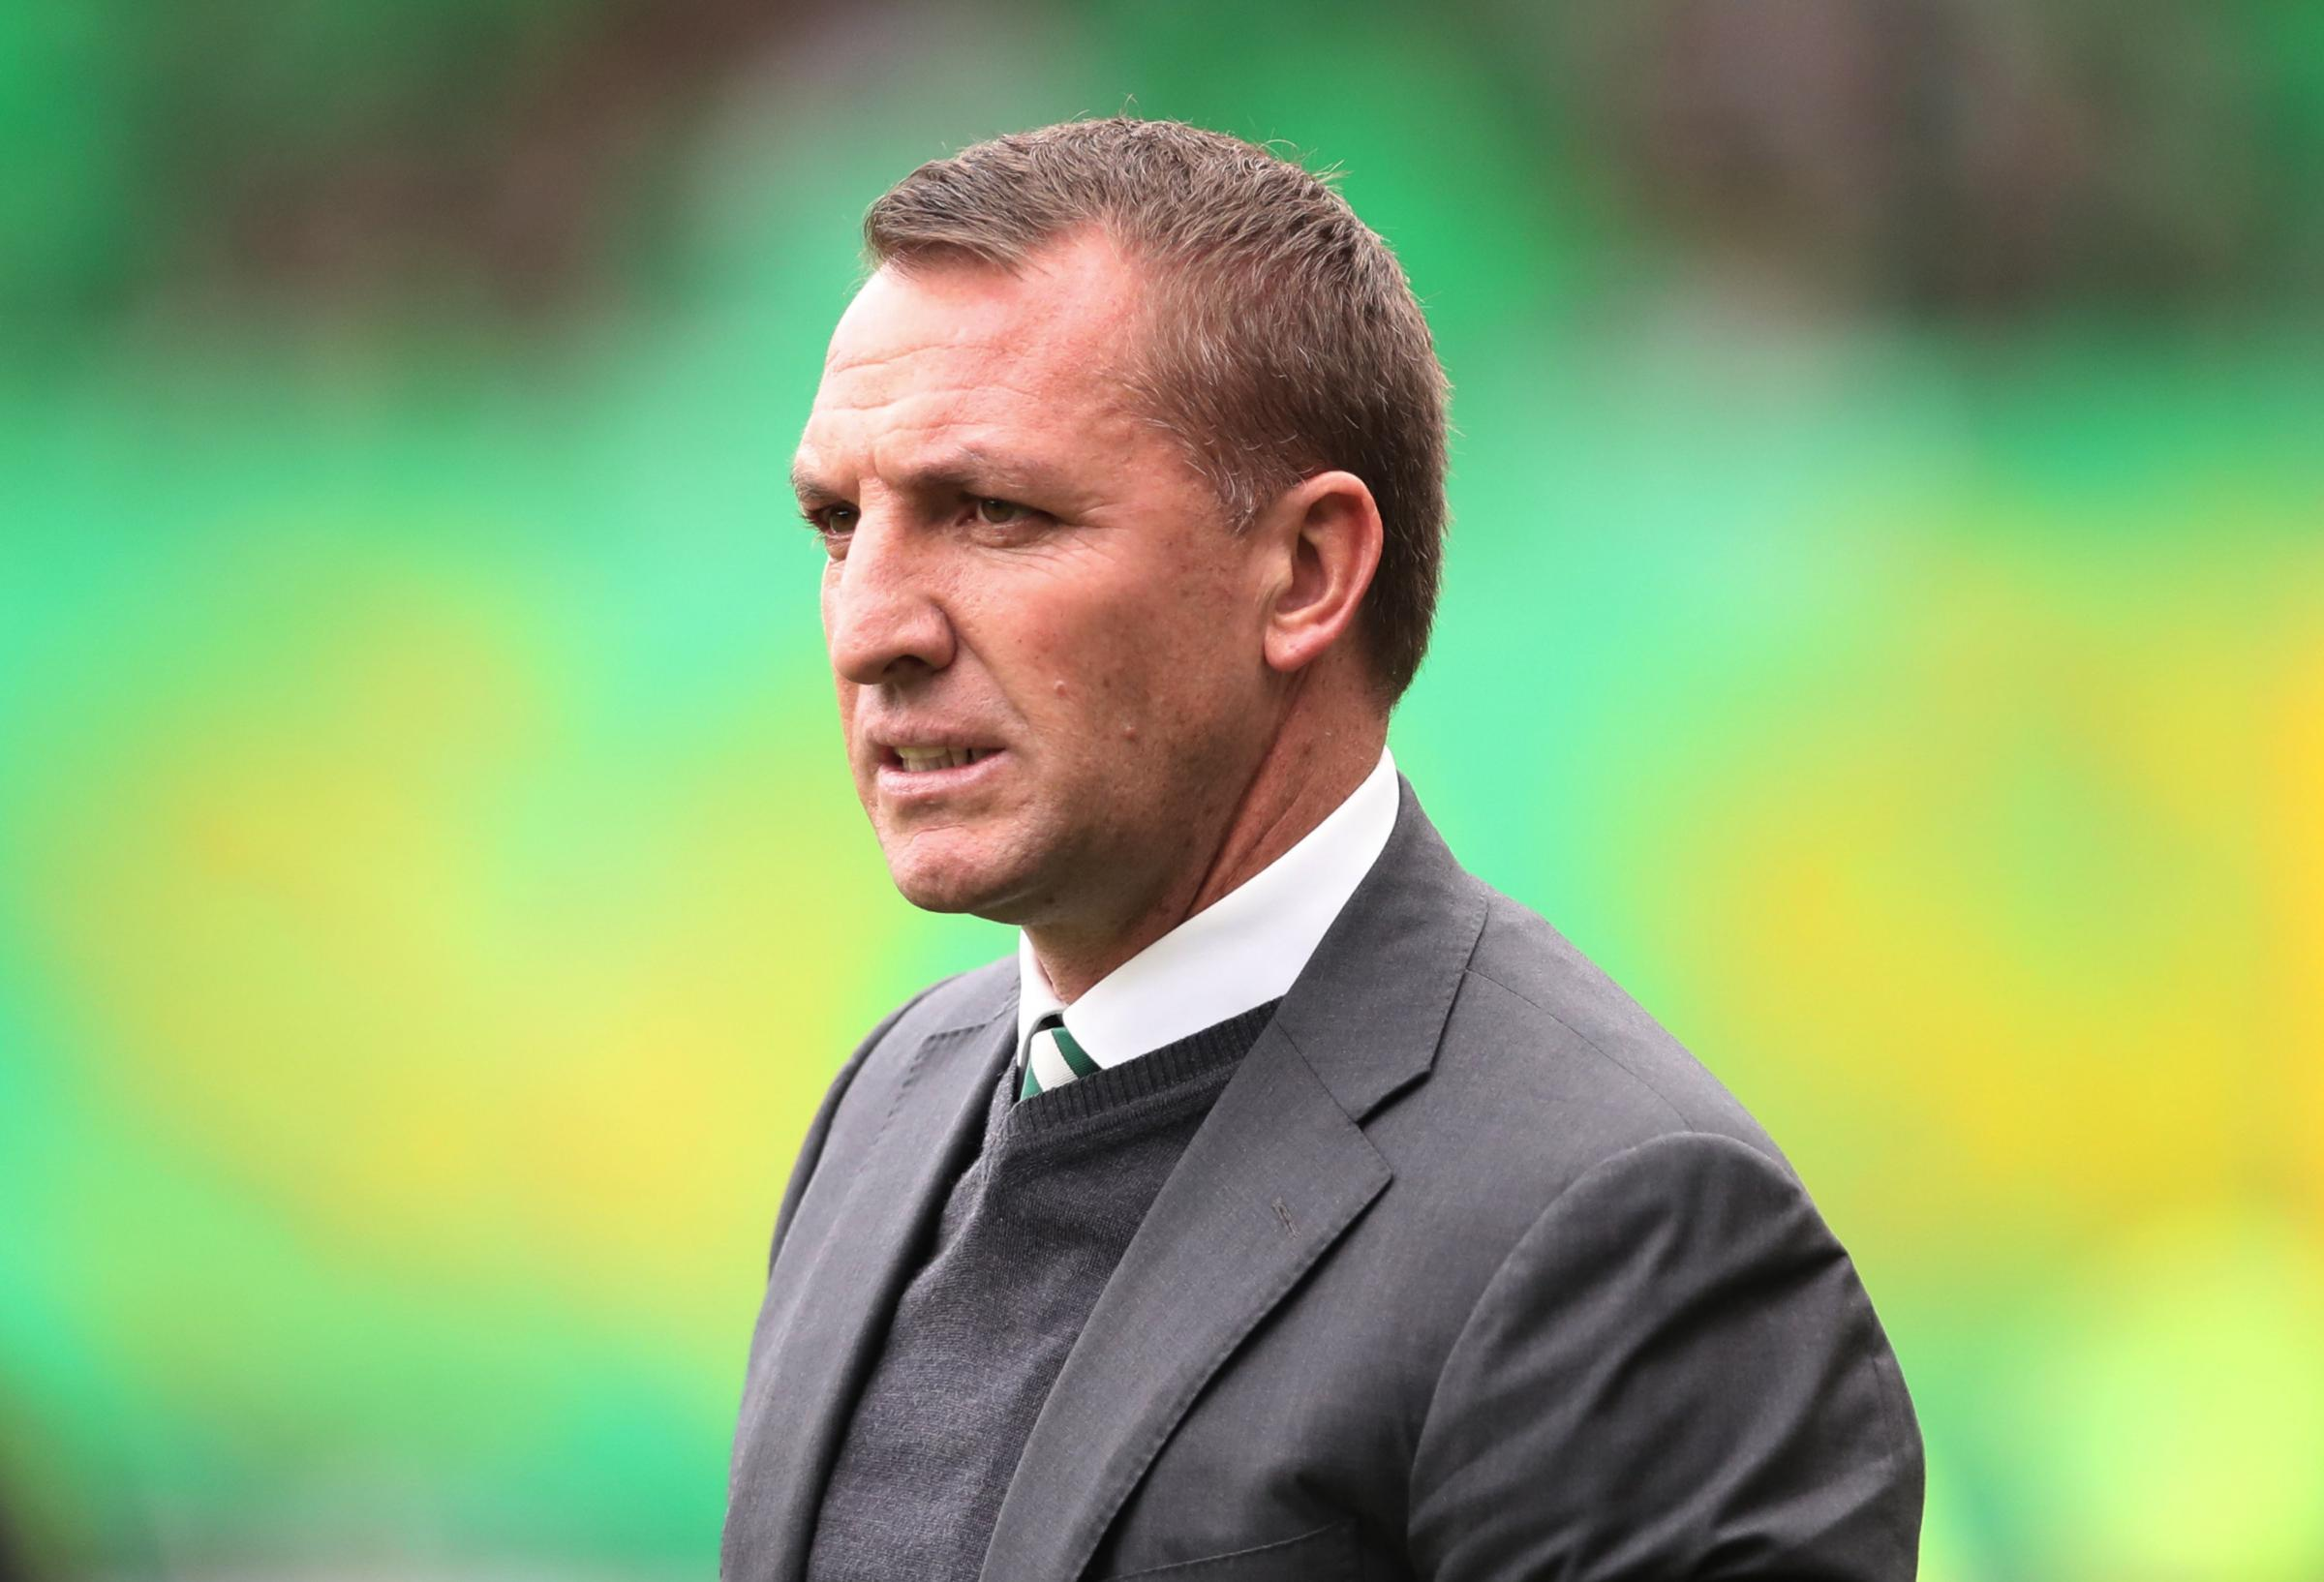 Brendan Rodgers will seek to drown out treble talk in build up to Celtic's cup final date with destiny